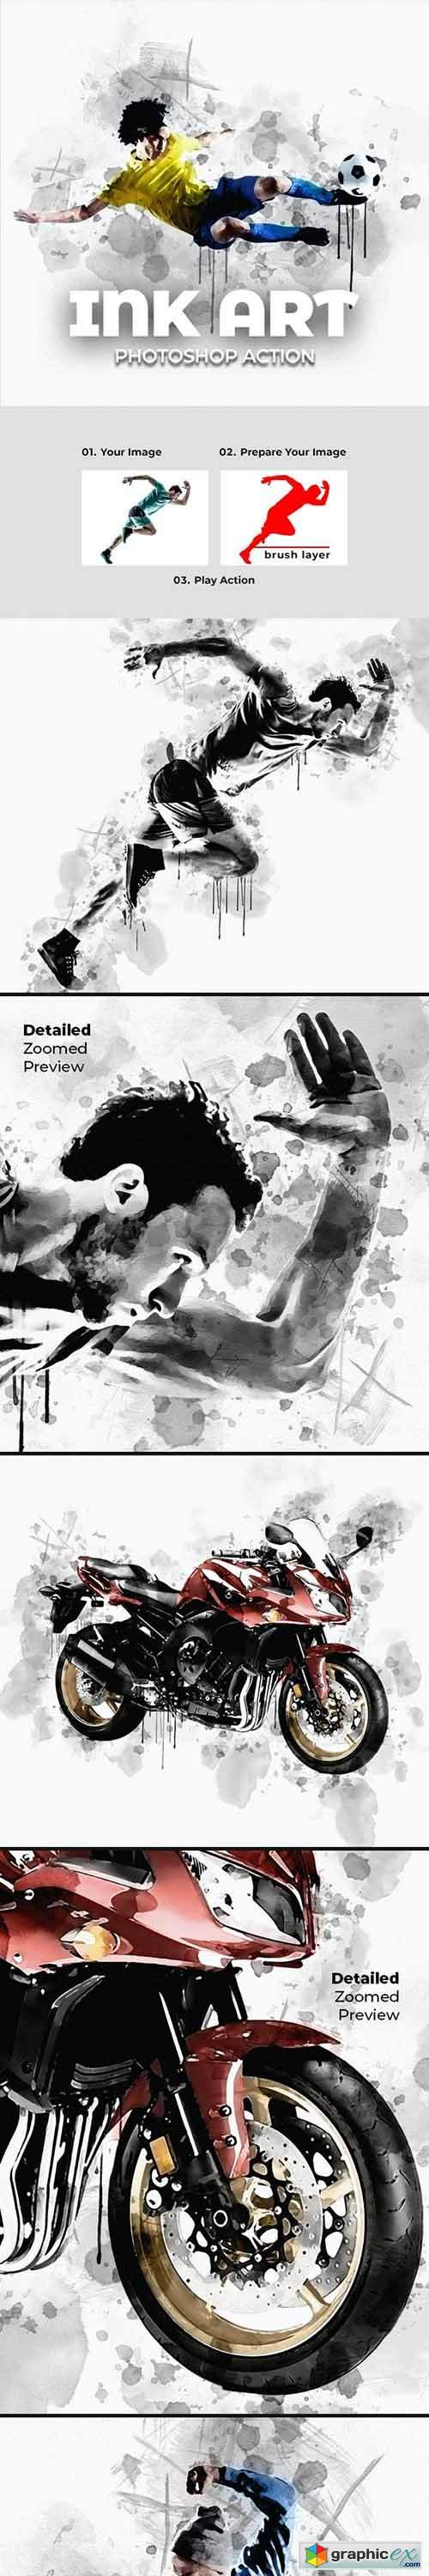 Ink Art Photoshop Action 28285461